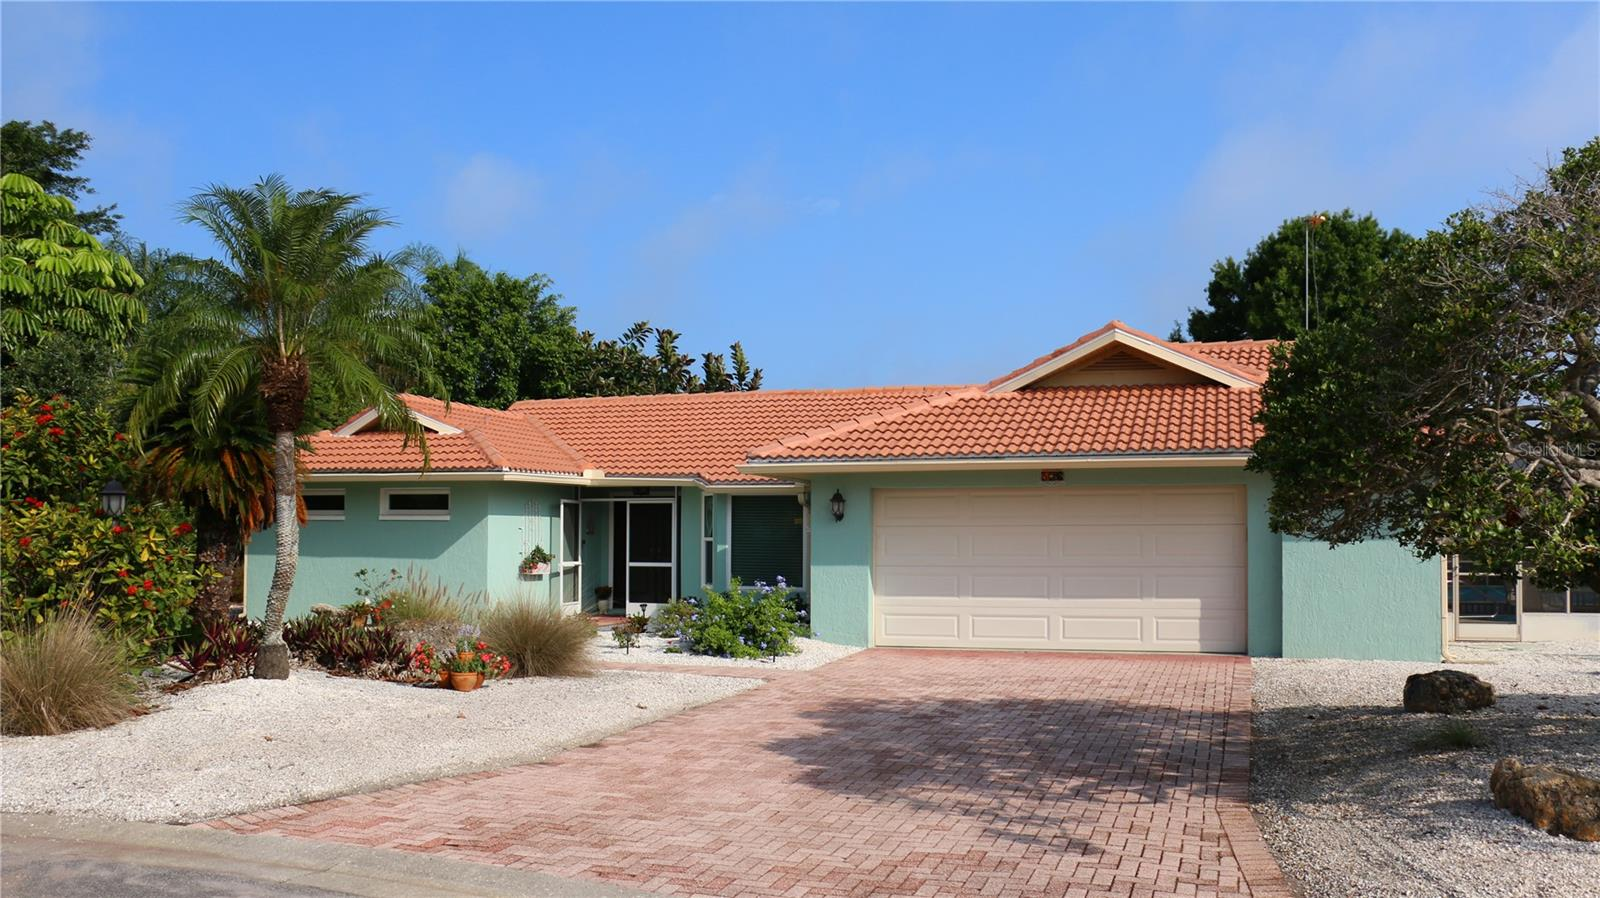 Primary photo of recently sold MLS# N6115041